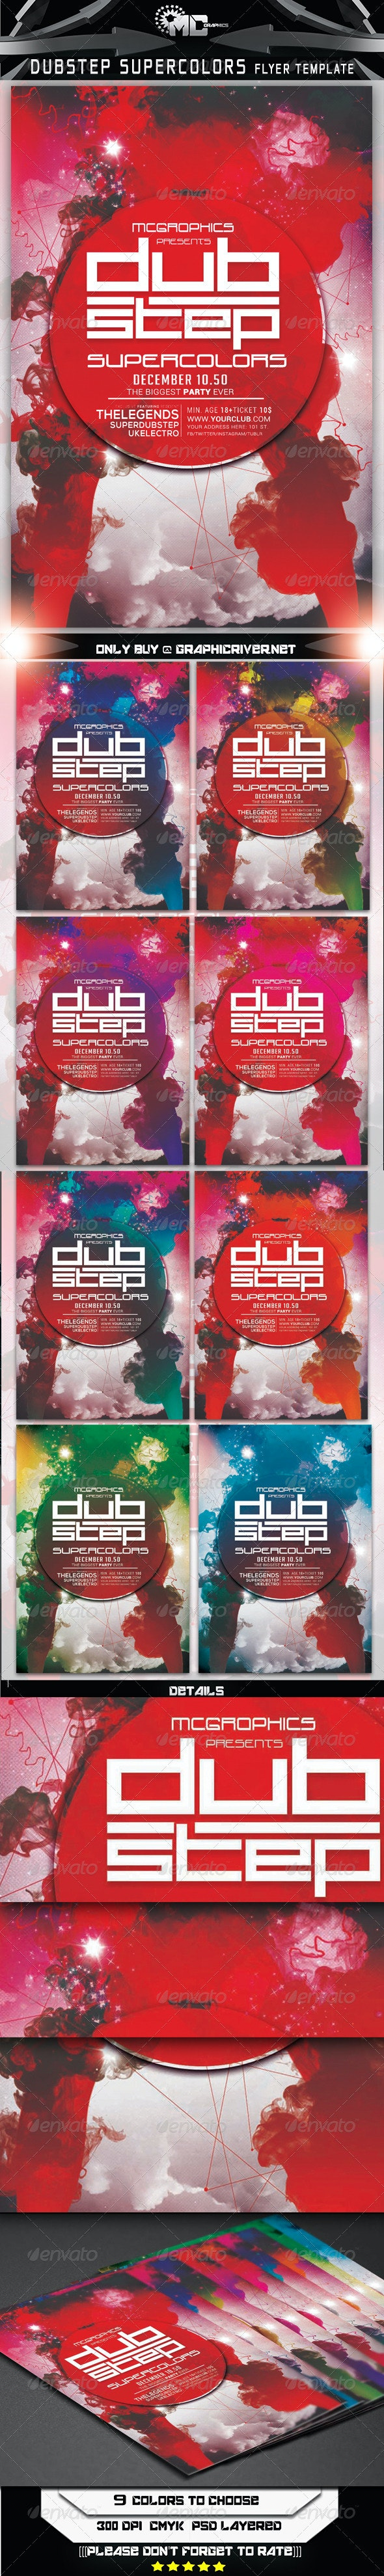 Dubstep Super Colors Flyer Template - Clubs & Parties Events